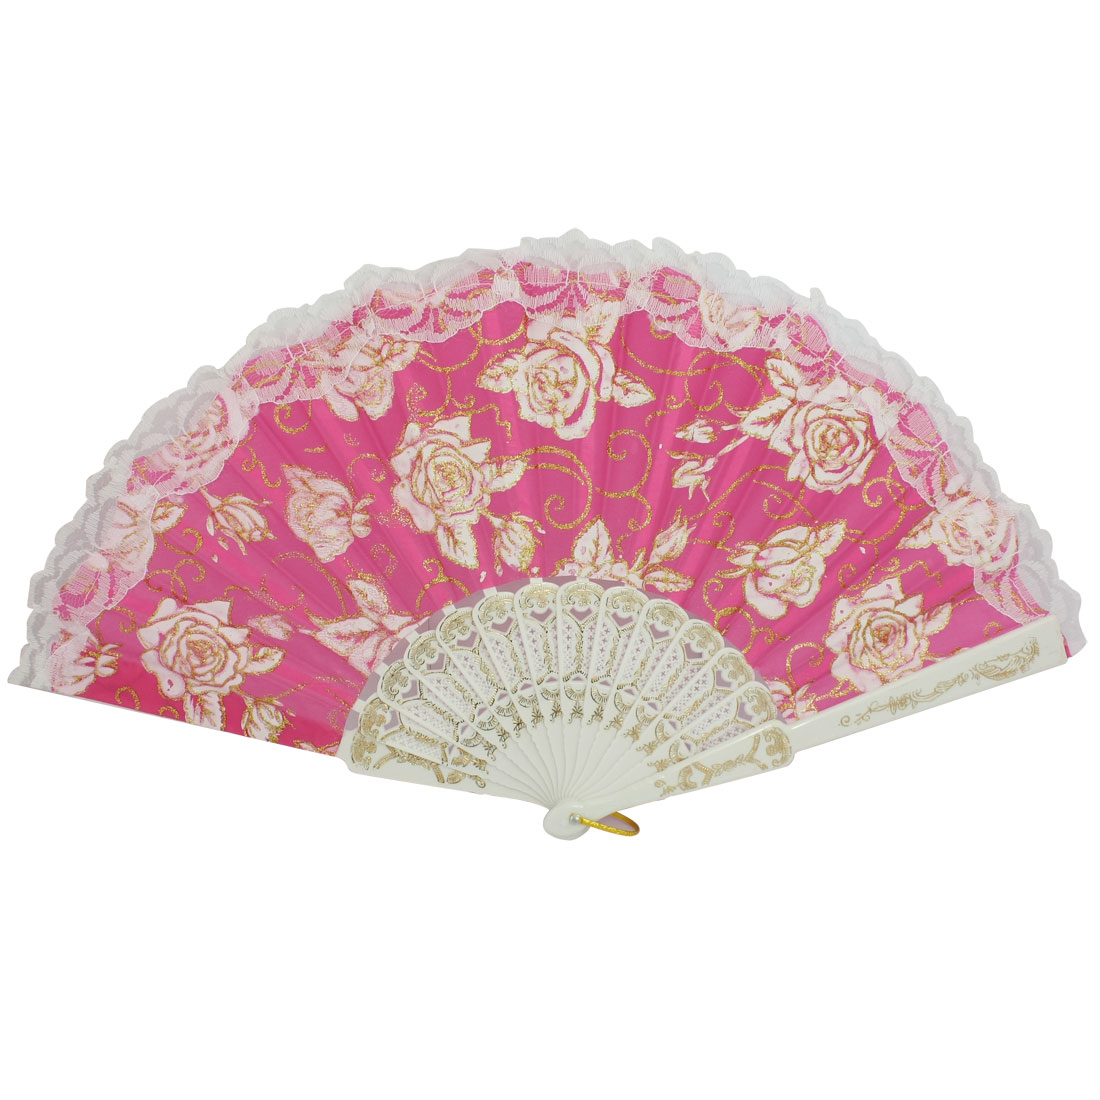 Magenta White Plastic Ribs Peony Pint Dance Foldable Hand Fan